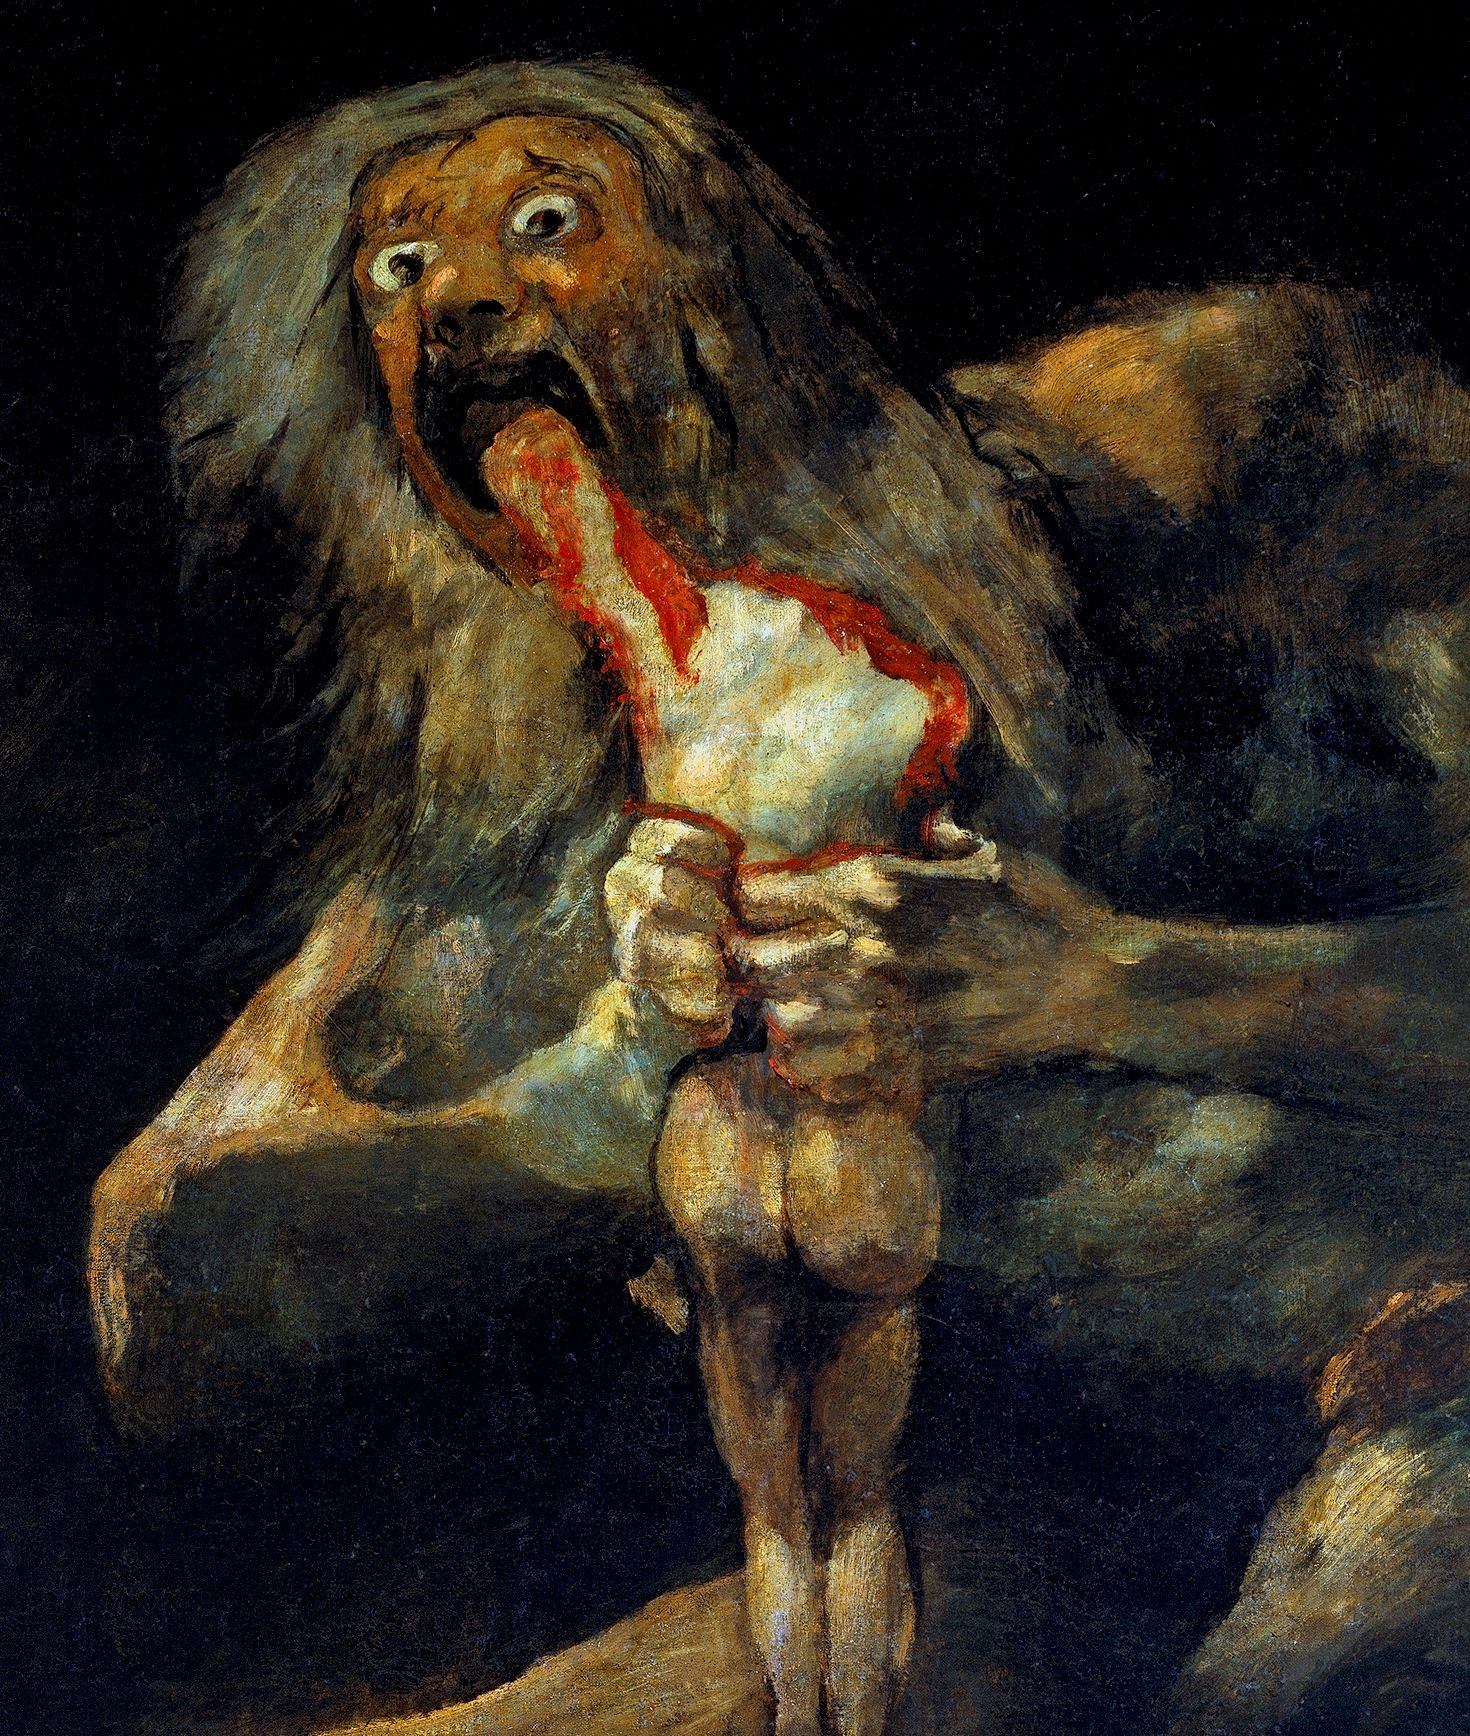 The Black Paintings is the name given to a group of fourteen paintings by Francisco Goya from the later years of his life, likely between 1819 and 1823. They portray intense, haunting themes, reflective of both his fear of insanity and his bleak outlook on humanity. In 1819, at the age of 72, Goya moved into a two-story house outside Madrid that was called Quinta del Sordo . Although the house had been named after the previous owner, who was deaf, Goya too was nearly deaf at the time as a…